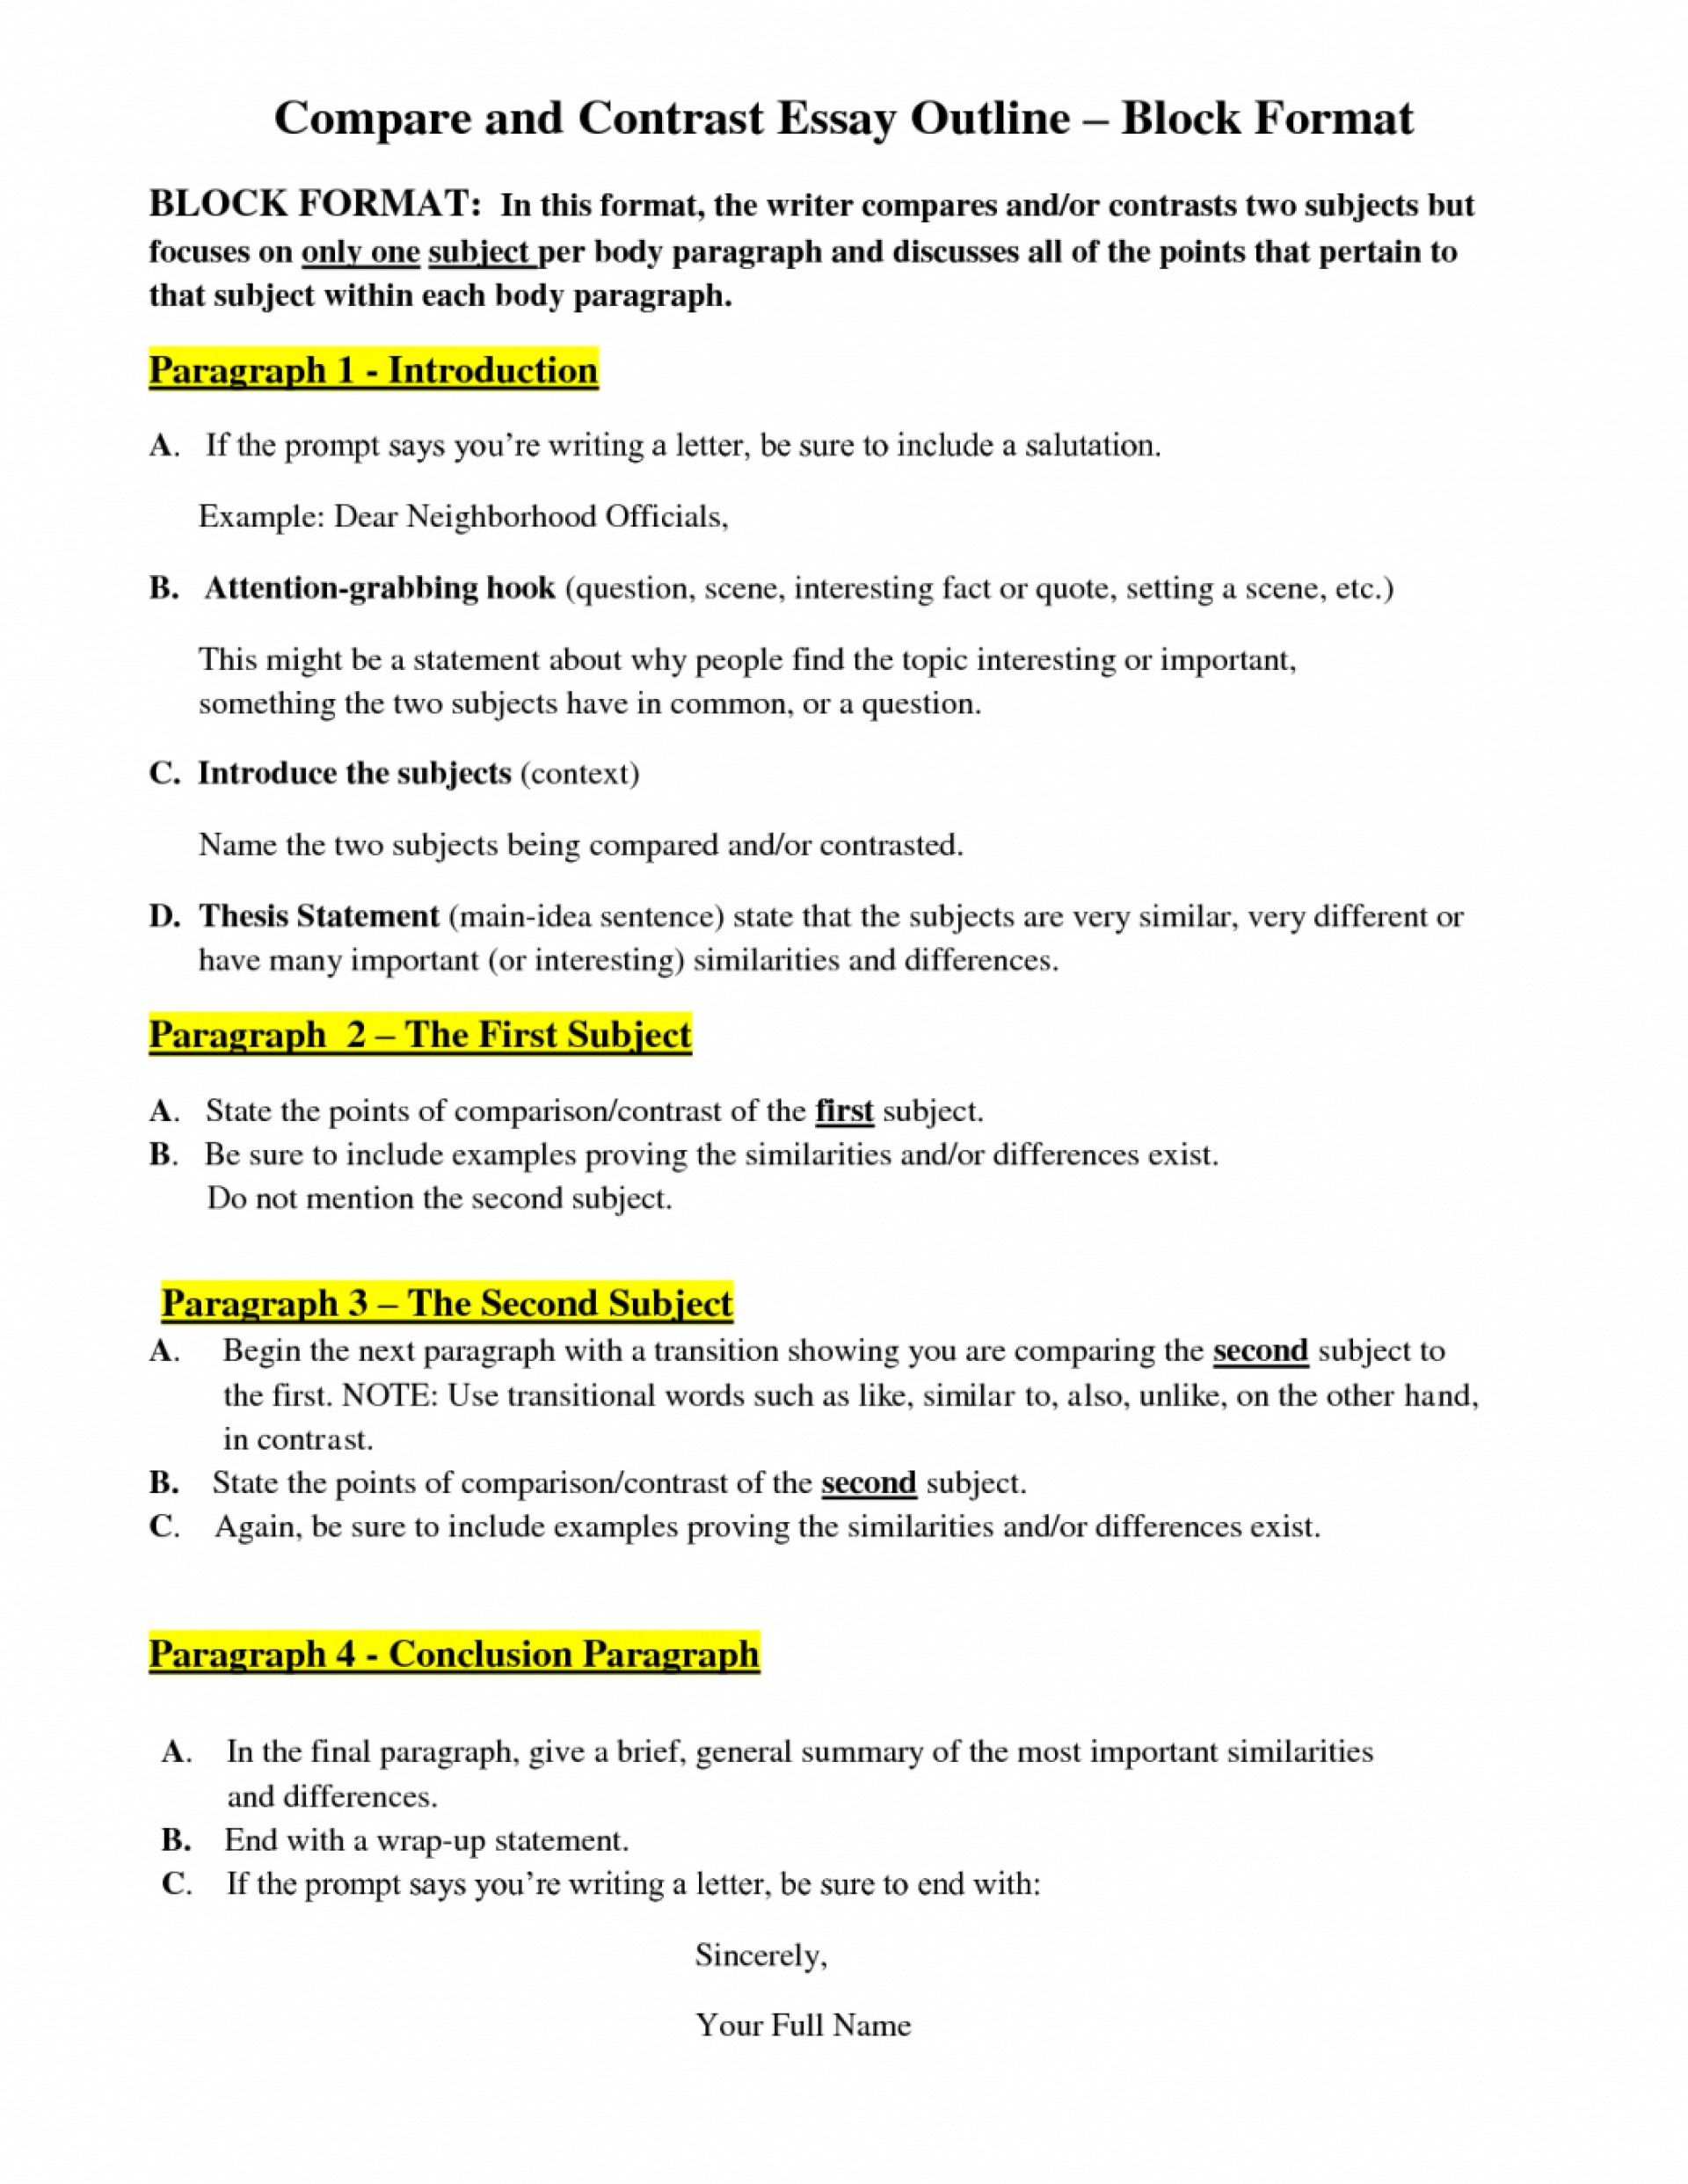 007 Essay Example Essays Compare And Contrasts For Year College Vs Outline Block 1048x1356 Comparison Best Contrast Sample Examples High School Pdf 1920